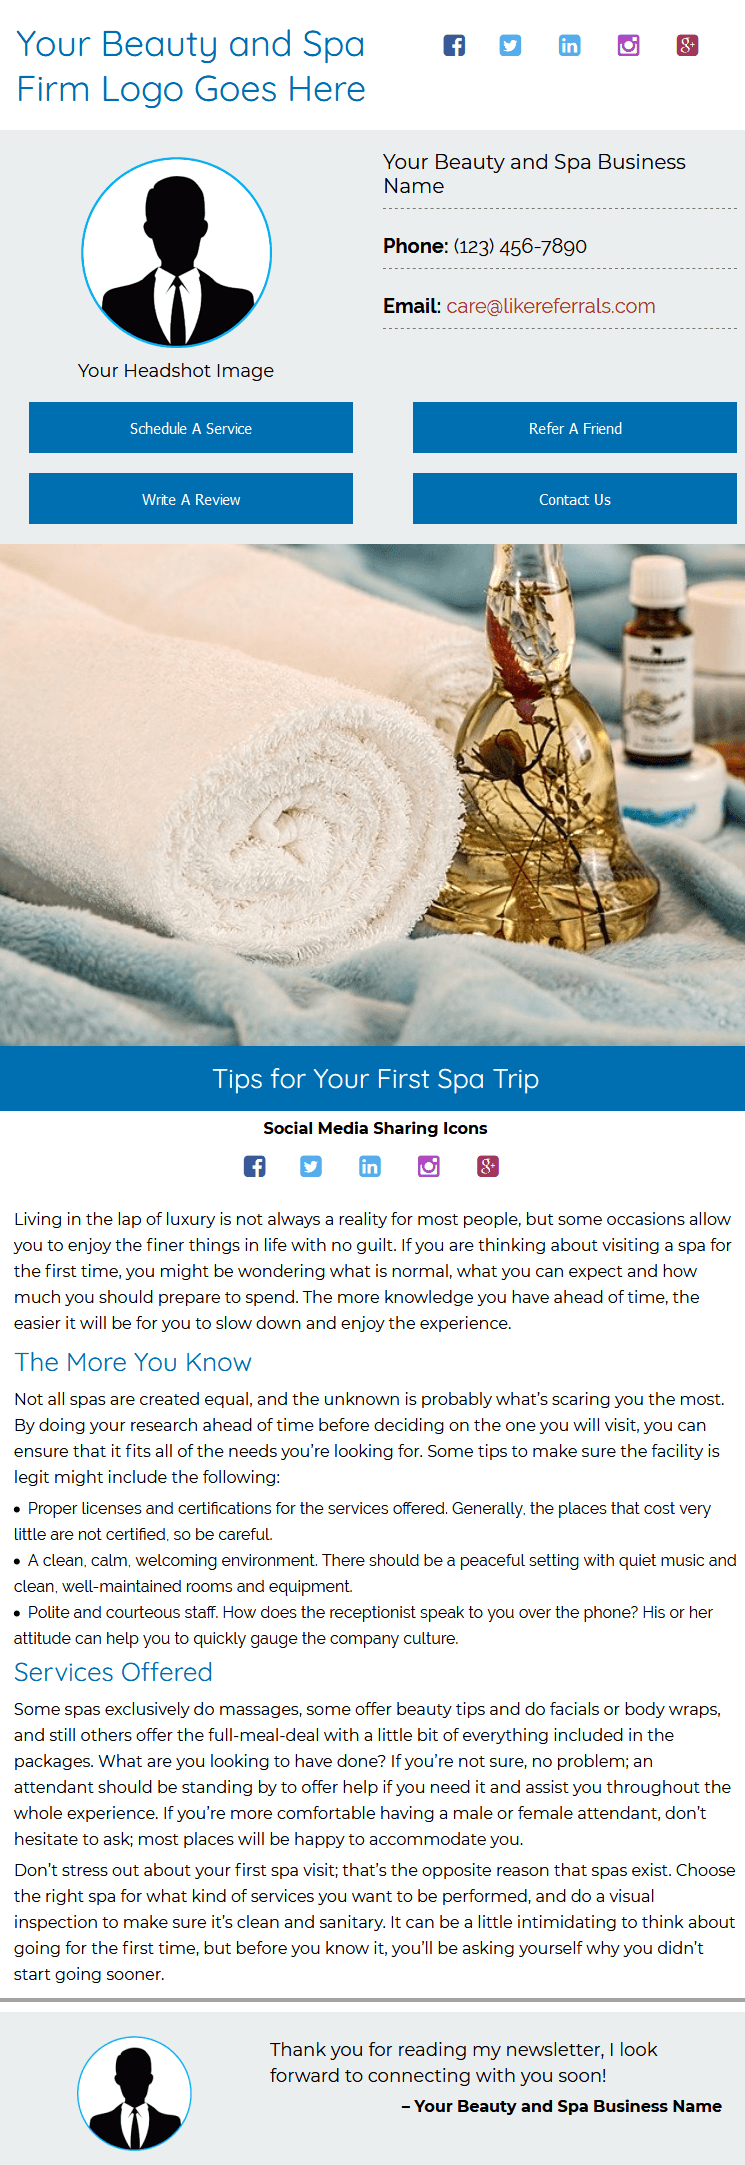 Email Newsletter Marketing Services for Beauty And Spa